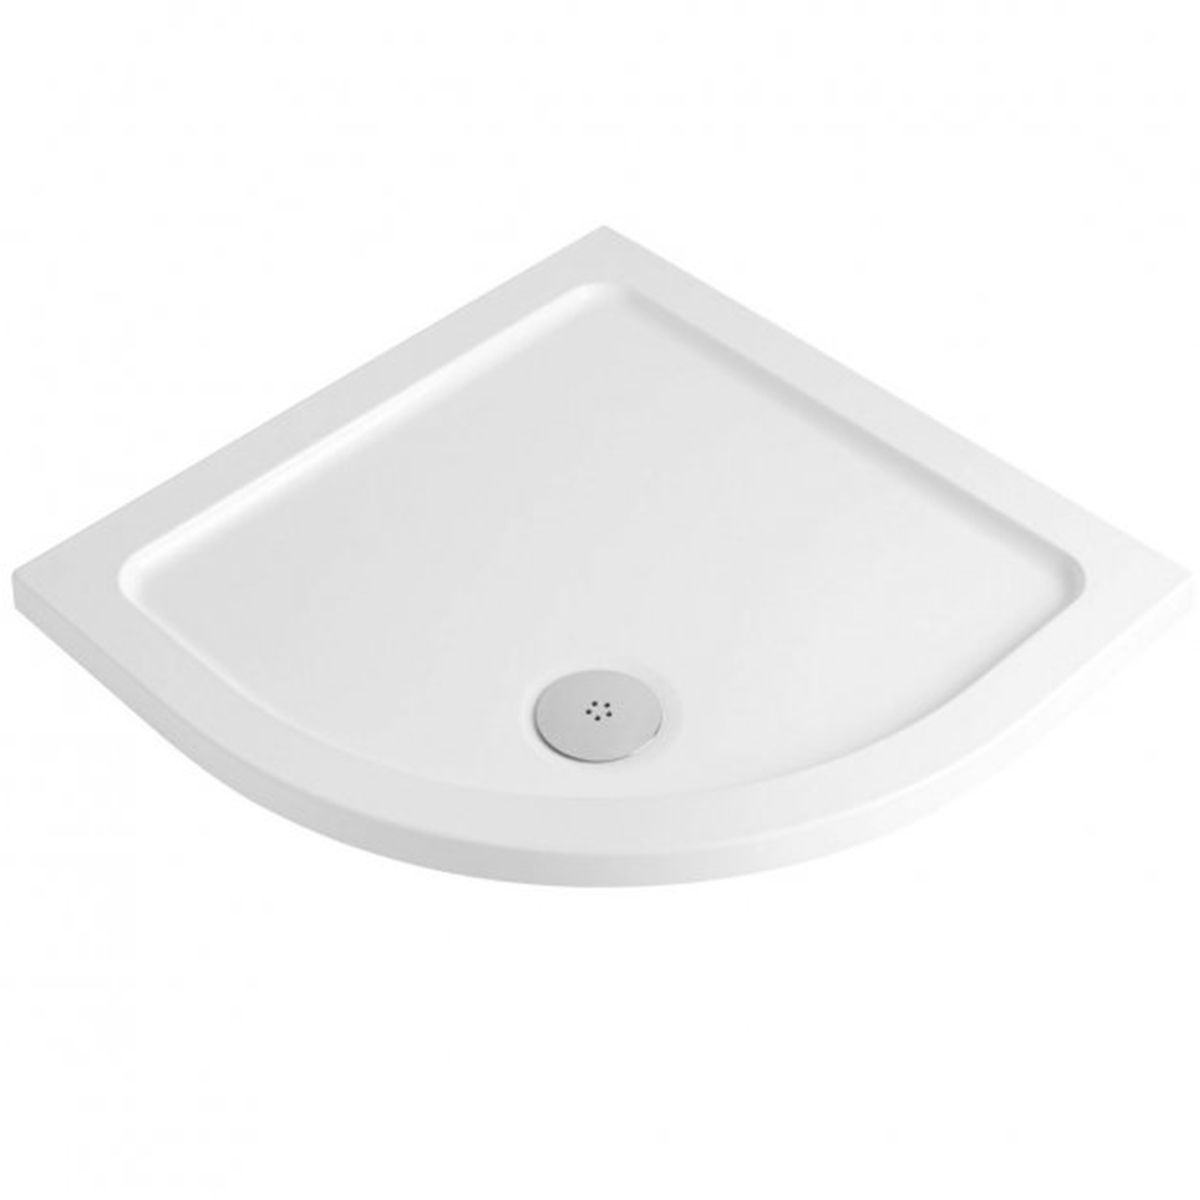 Bathrooms To Love Reflex Quadrant Low Profile Shower Tray with Waste 900mm x 900mm